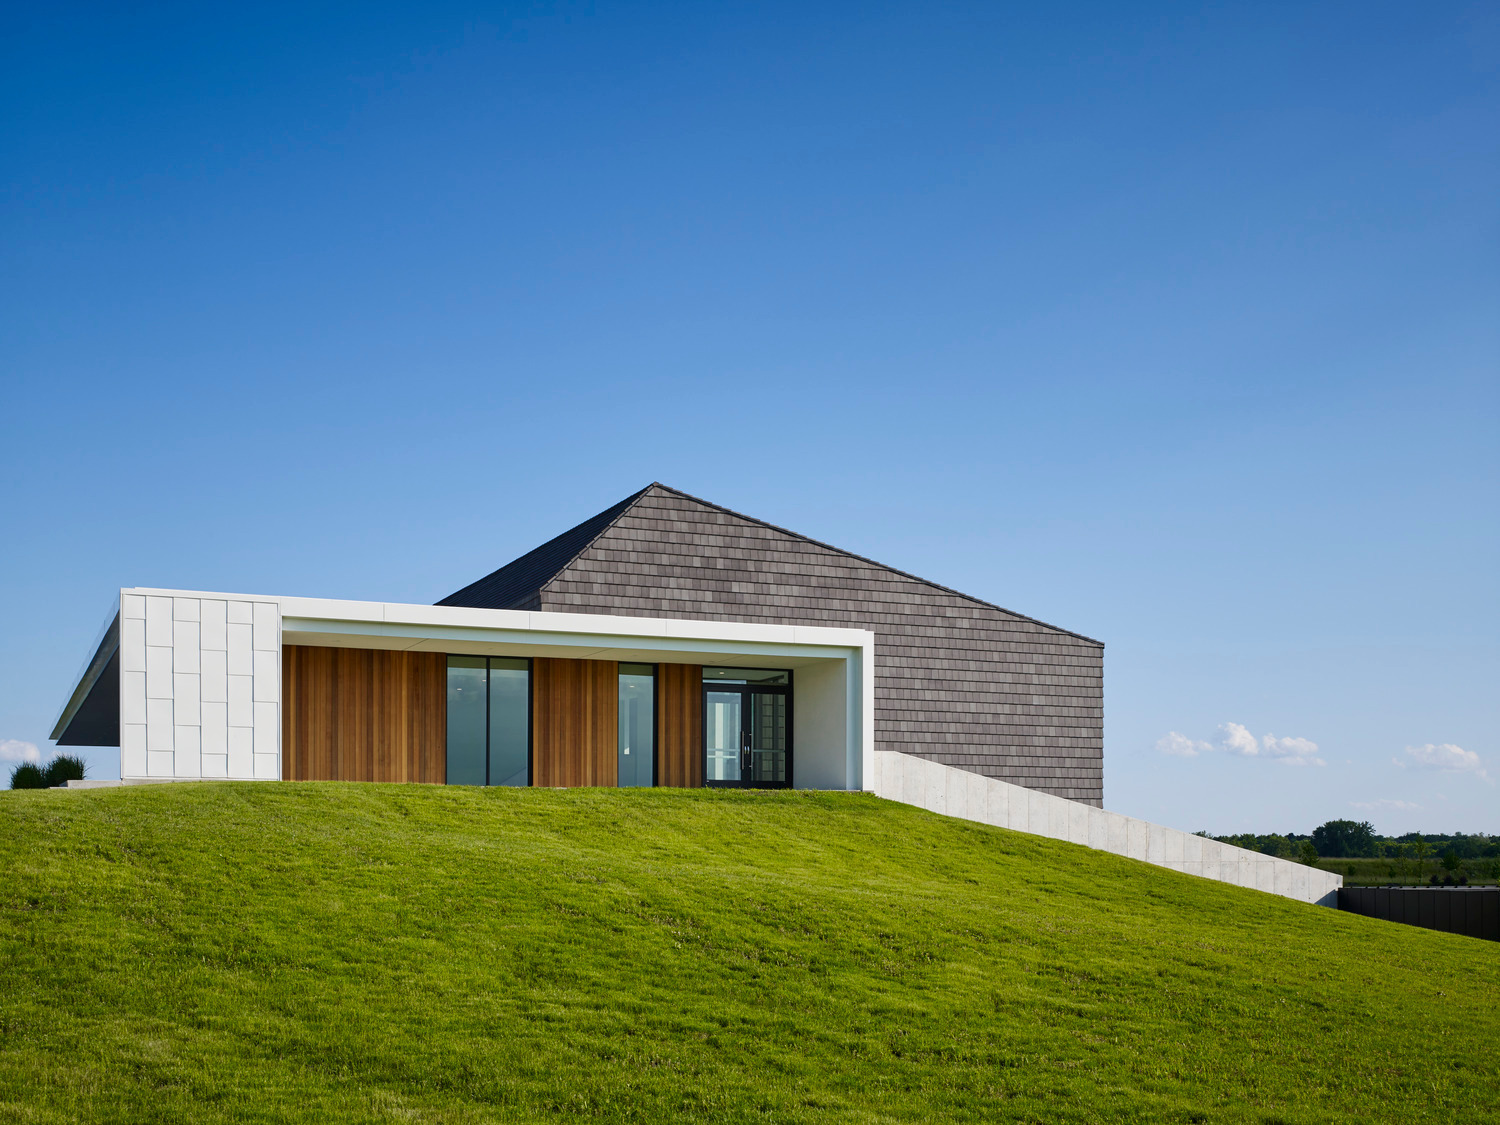 Terreal North America Lutheran Church of Hope Exterior Cladding and Facade Design